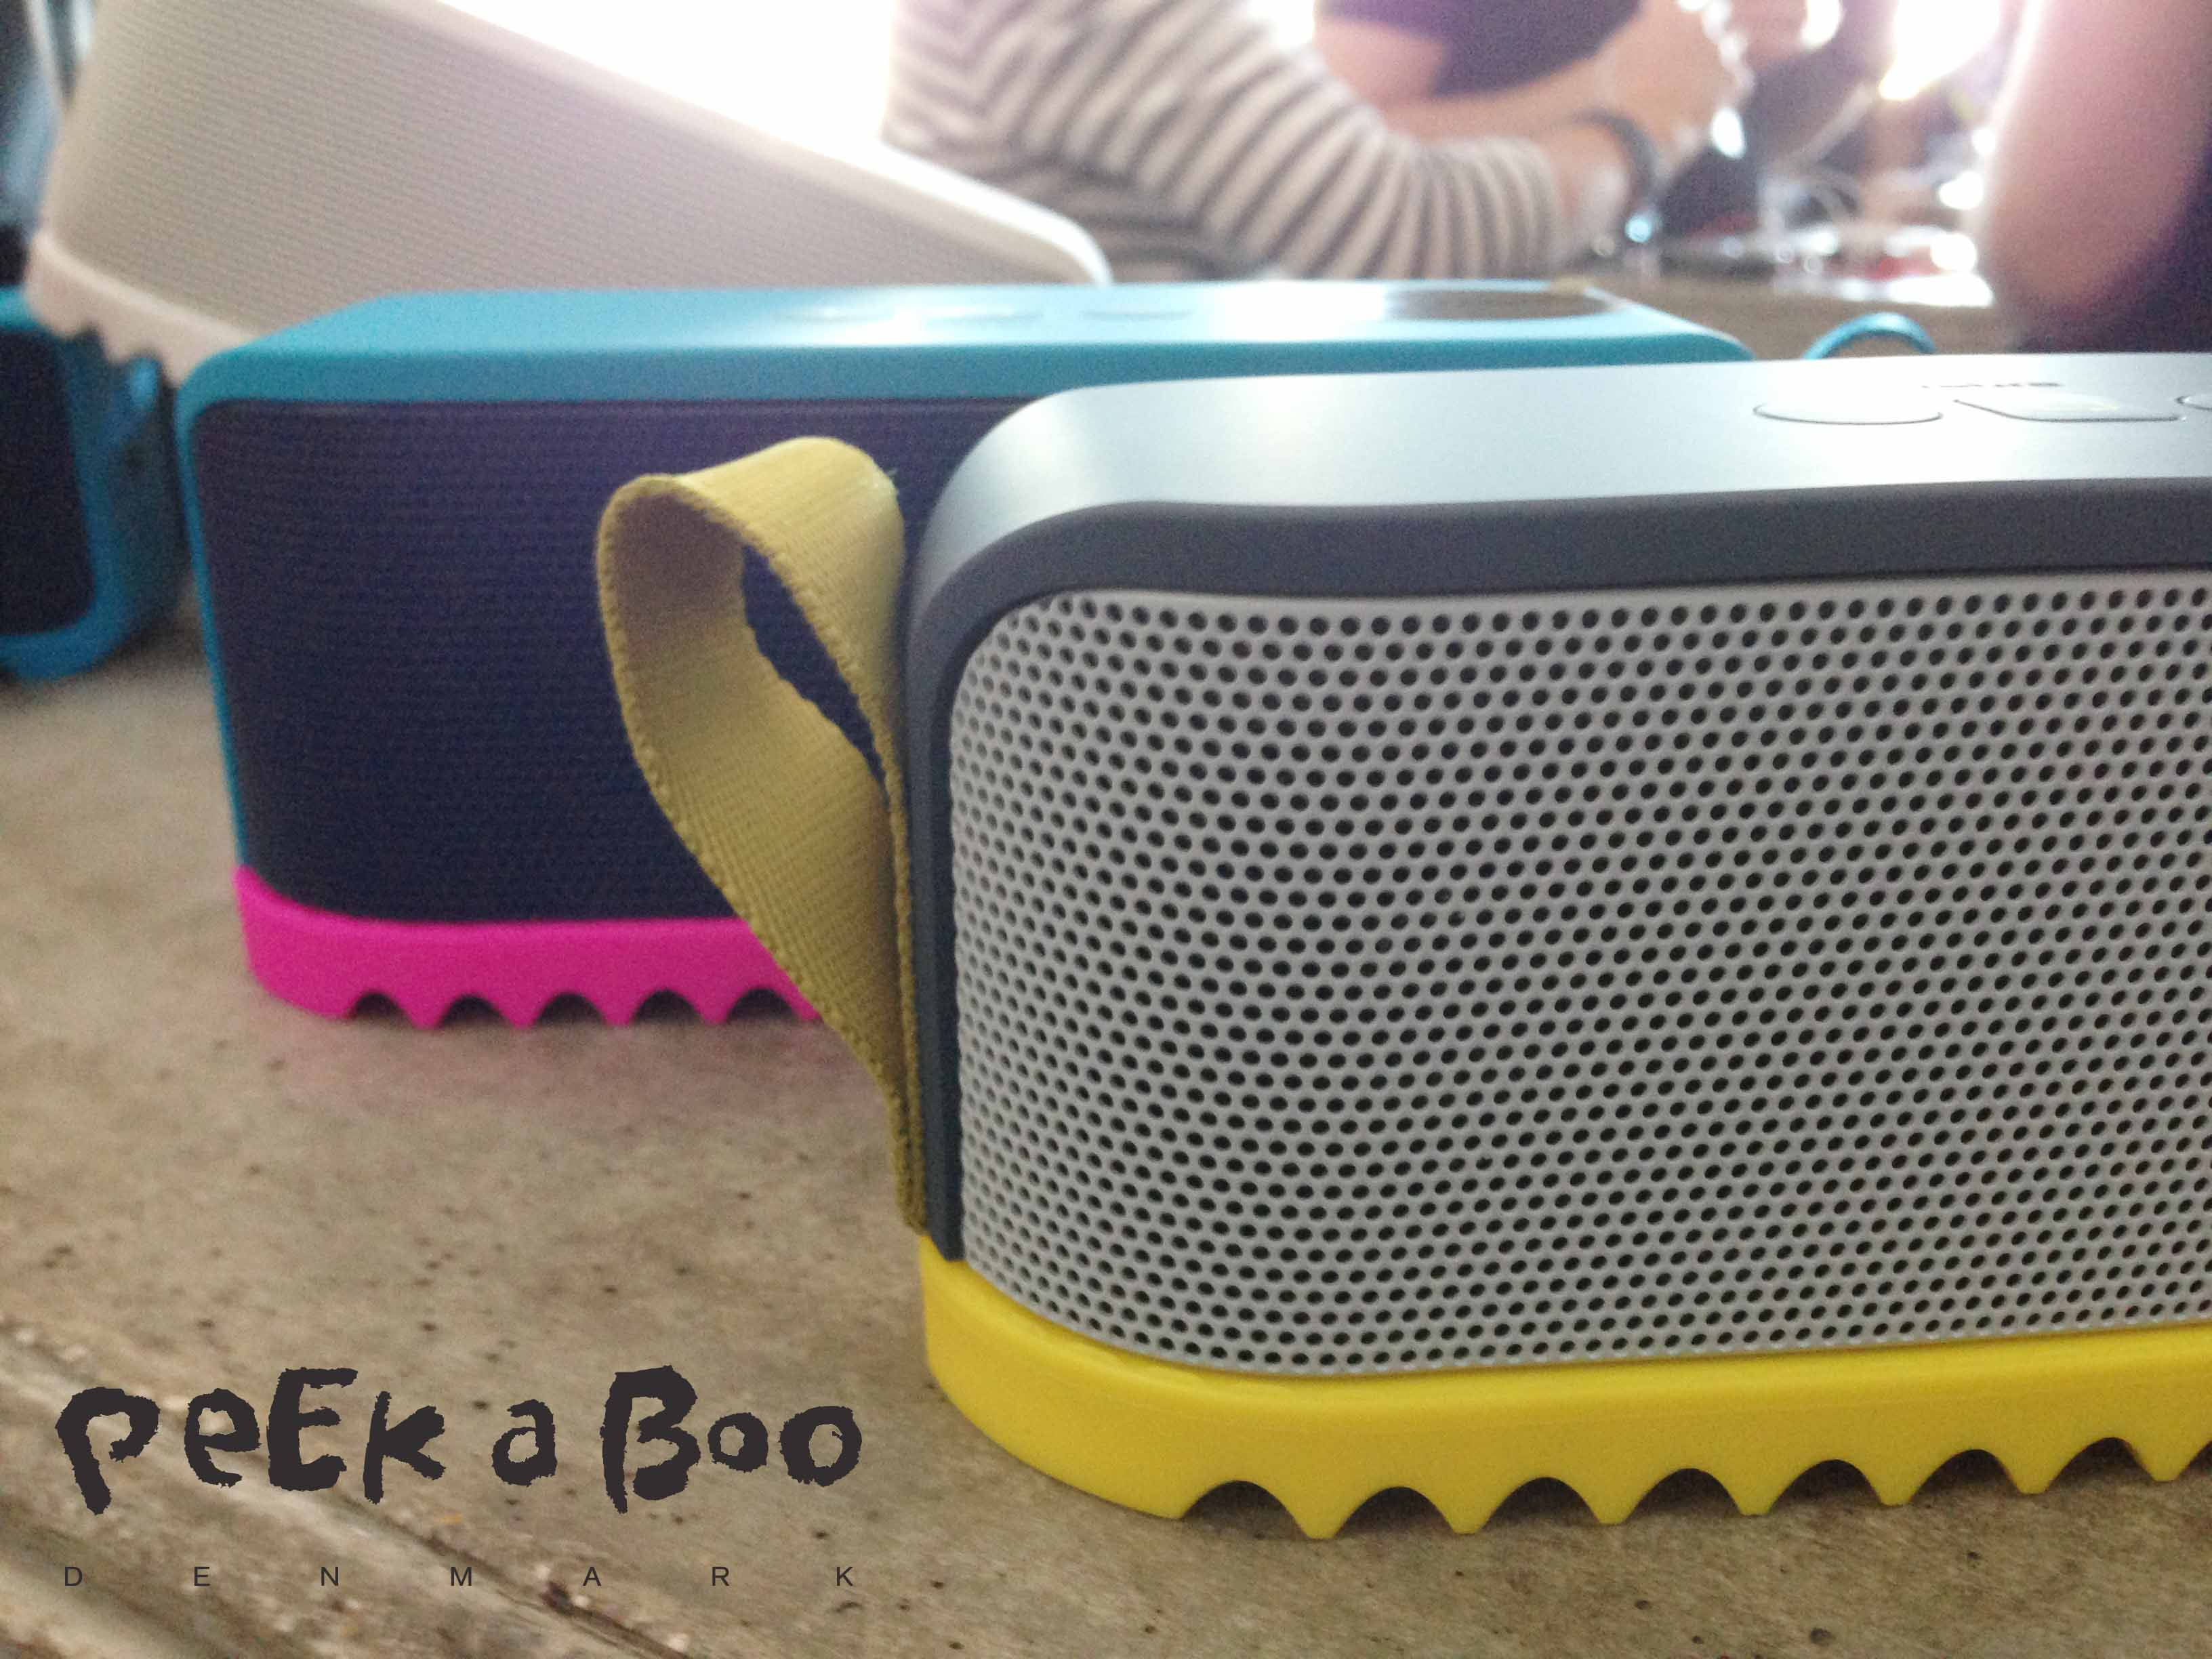 Solemate from Jabra, to bring the music to your garden, beach or anywhere you go.